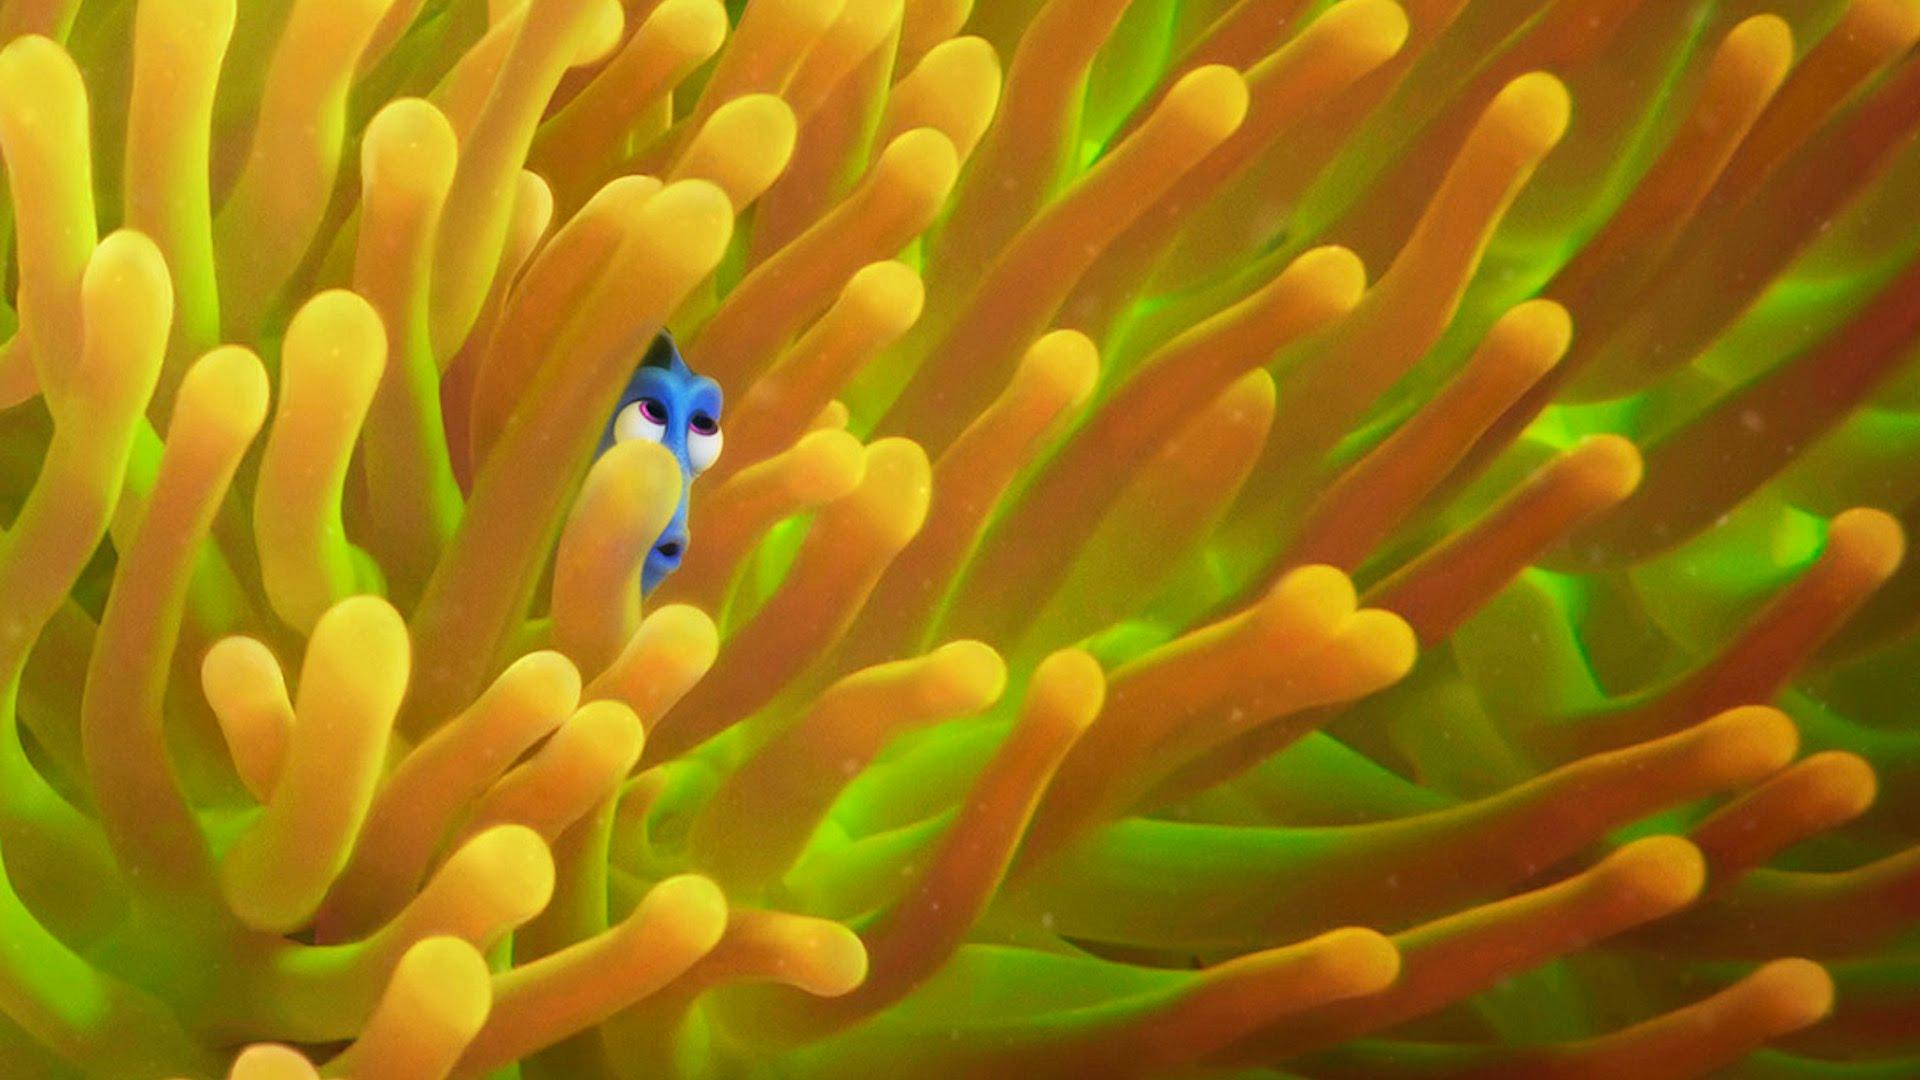 The Ellen Show Releases Finding Dory Trailer